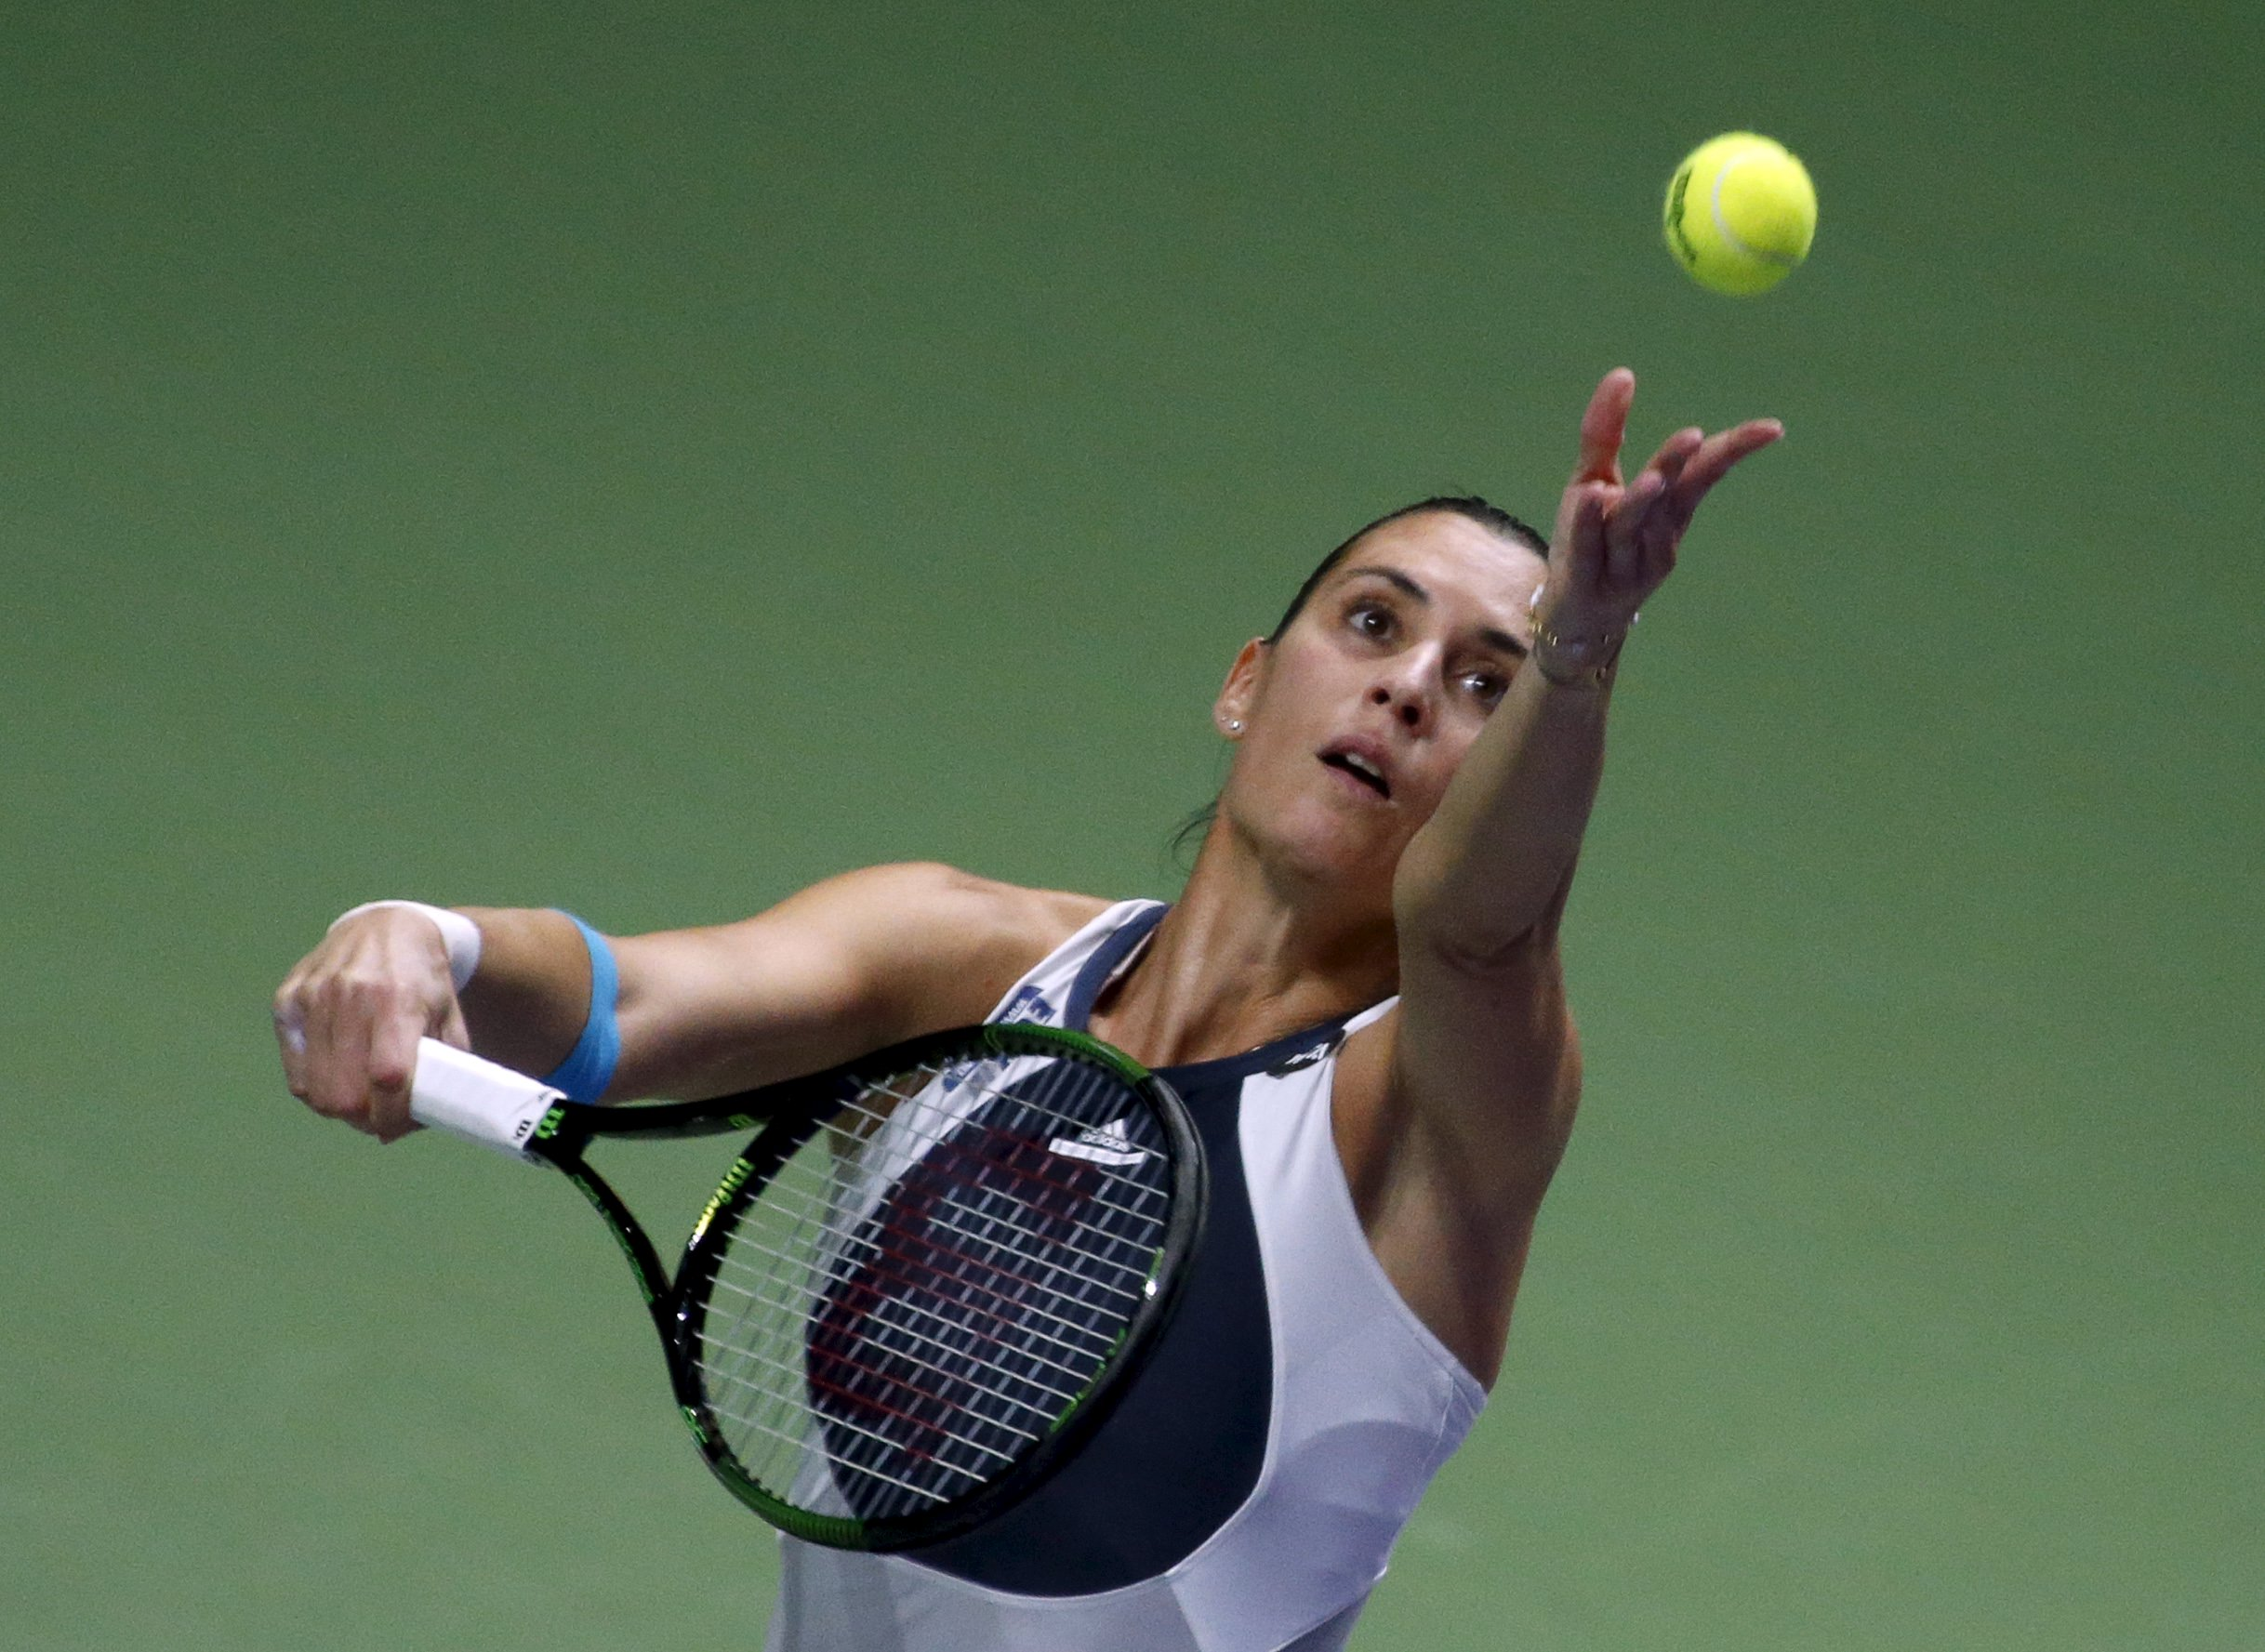 Flavia Pennetta of Italy serves to Maria Sharapova of Russia during their women's singles tennis match of the WTA Finals at the Singapore Indoor Stadium October 29, 2015. REUTERS/Edgar Su